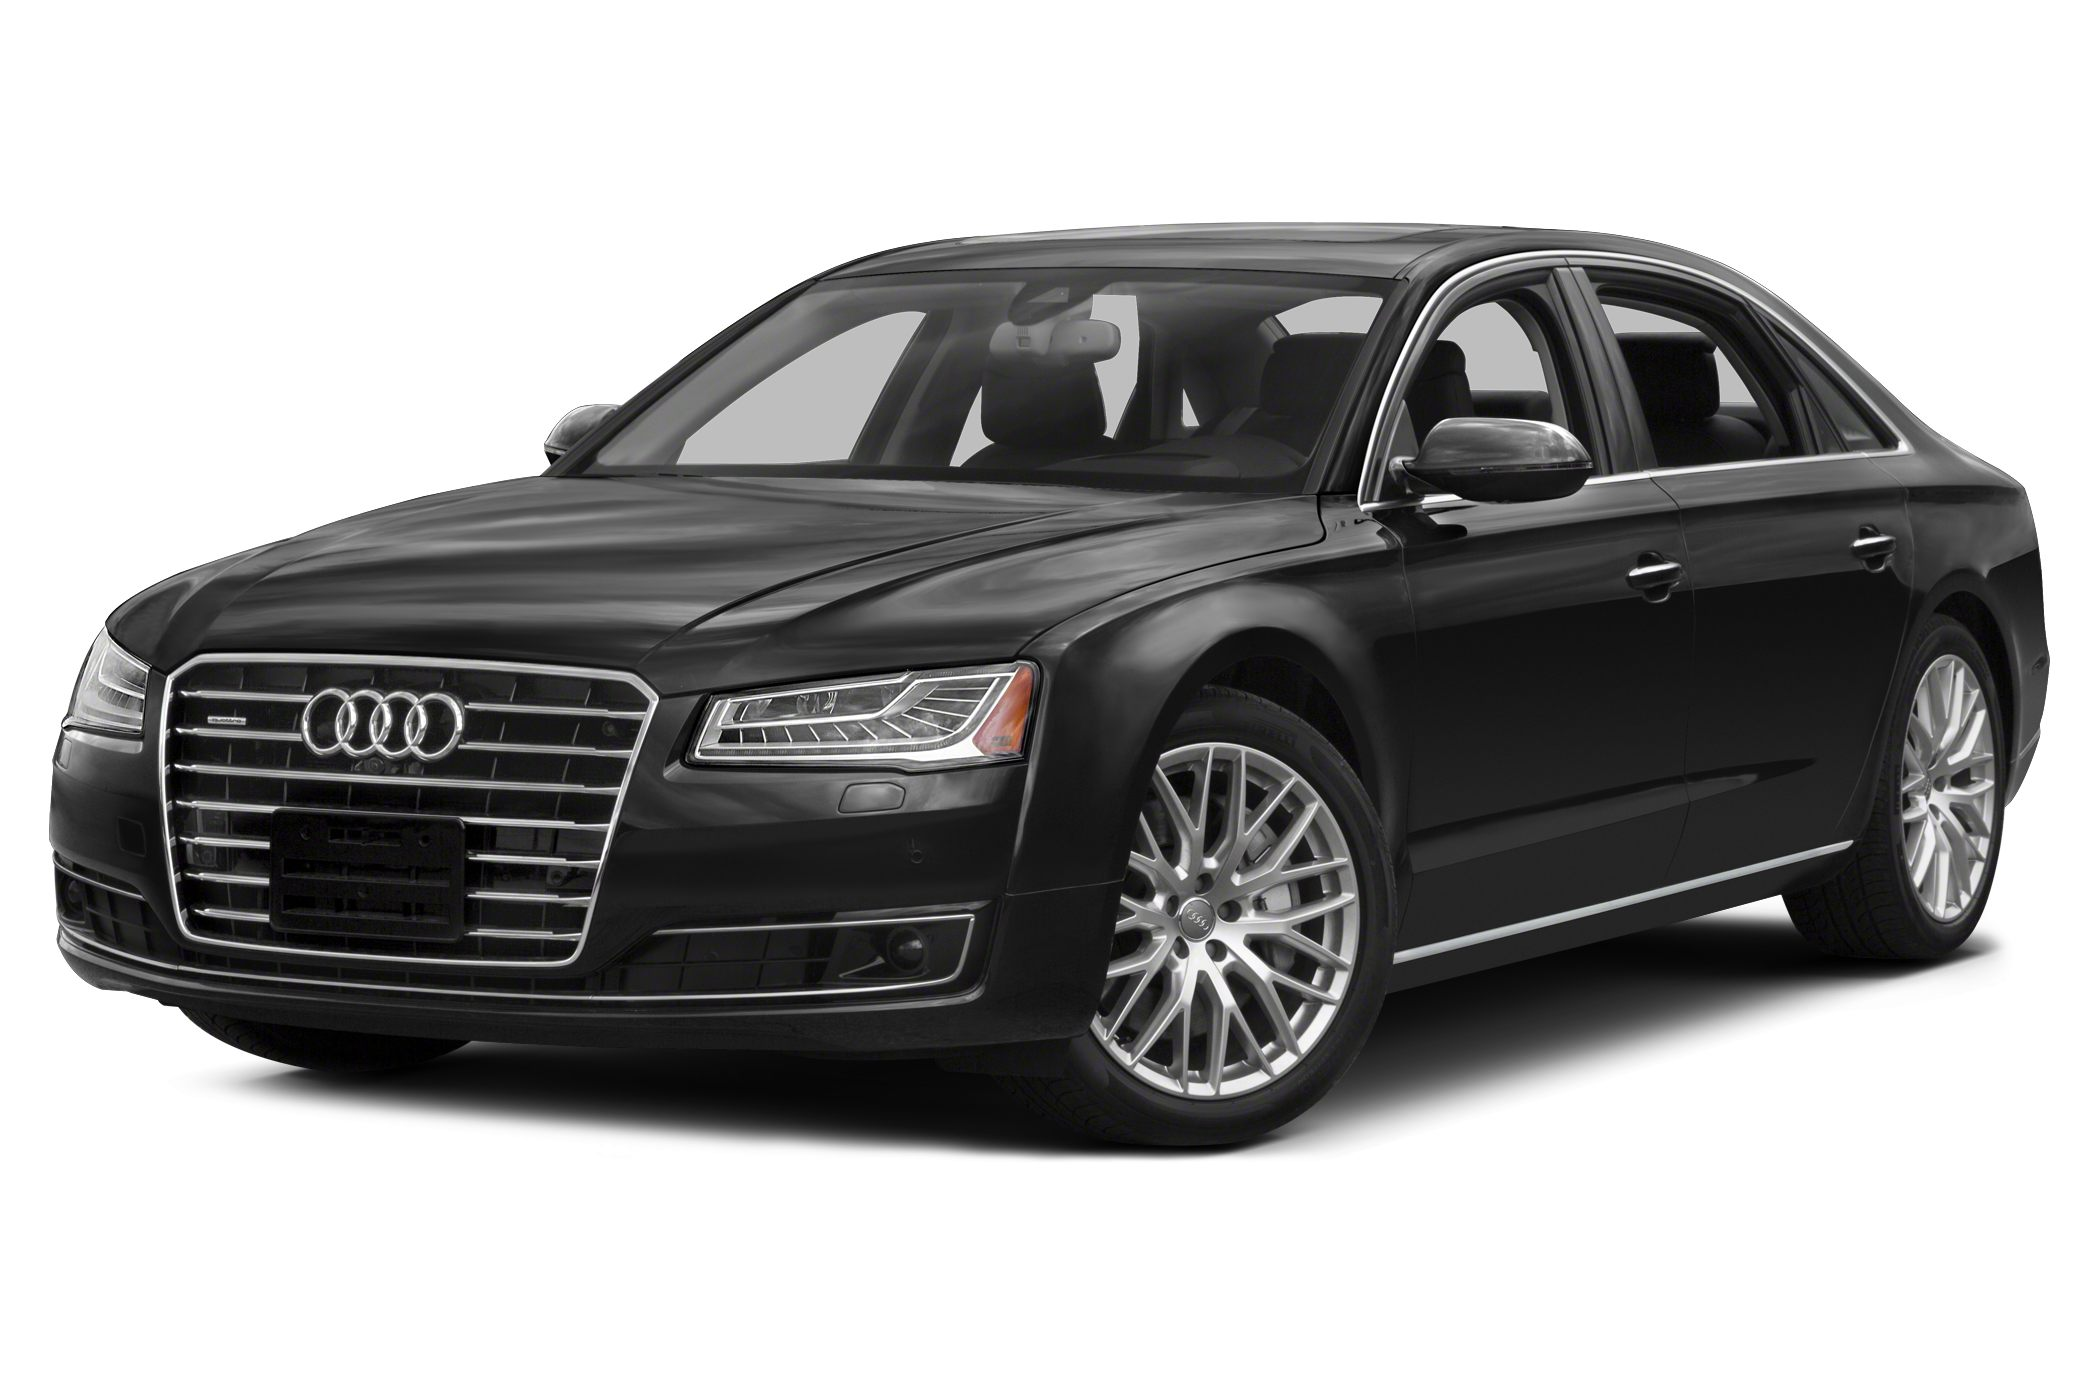 2015 Audi A8 L 3.0T Sedan for sale in Atlanta for $70,049 with 5,401 miles.